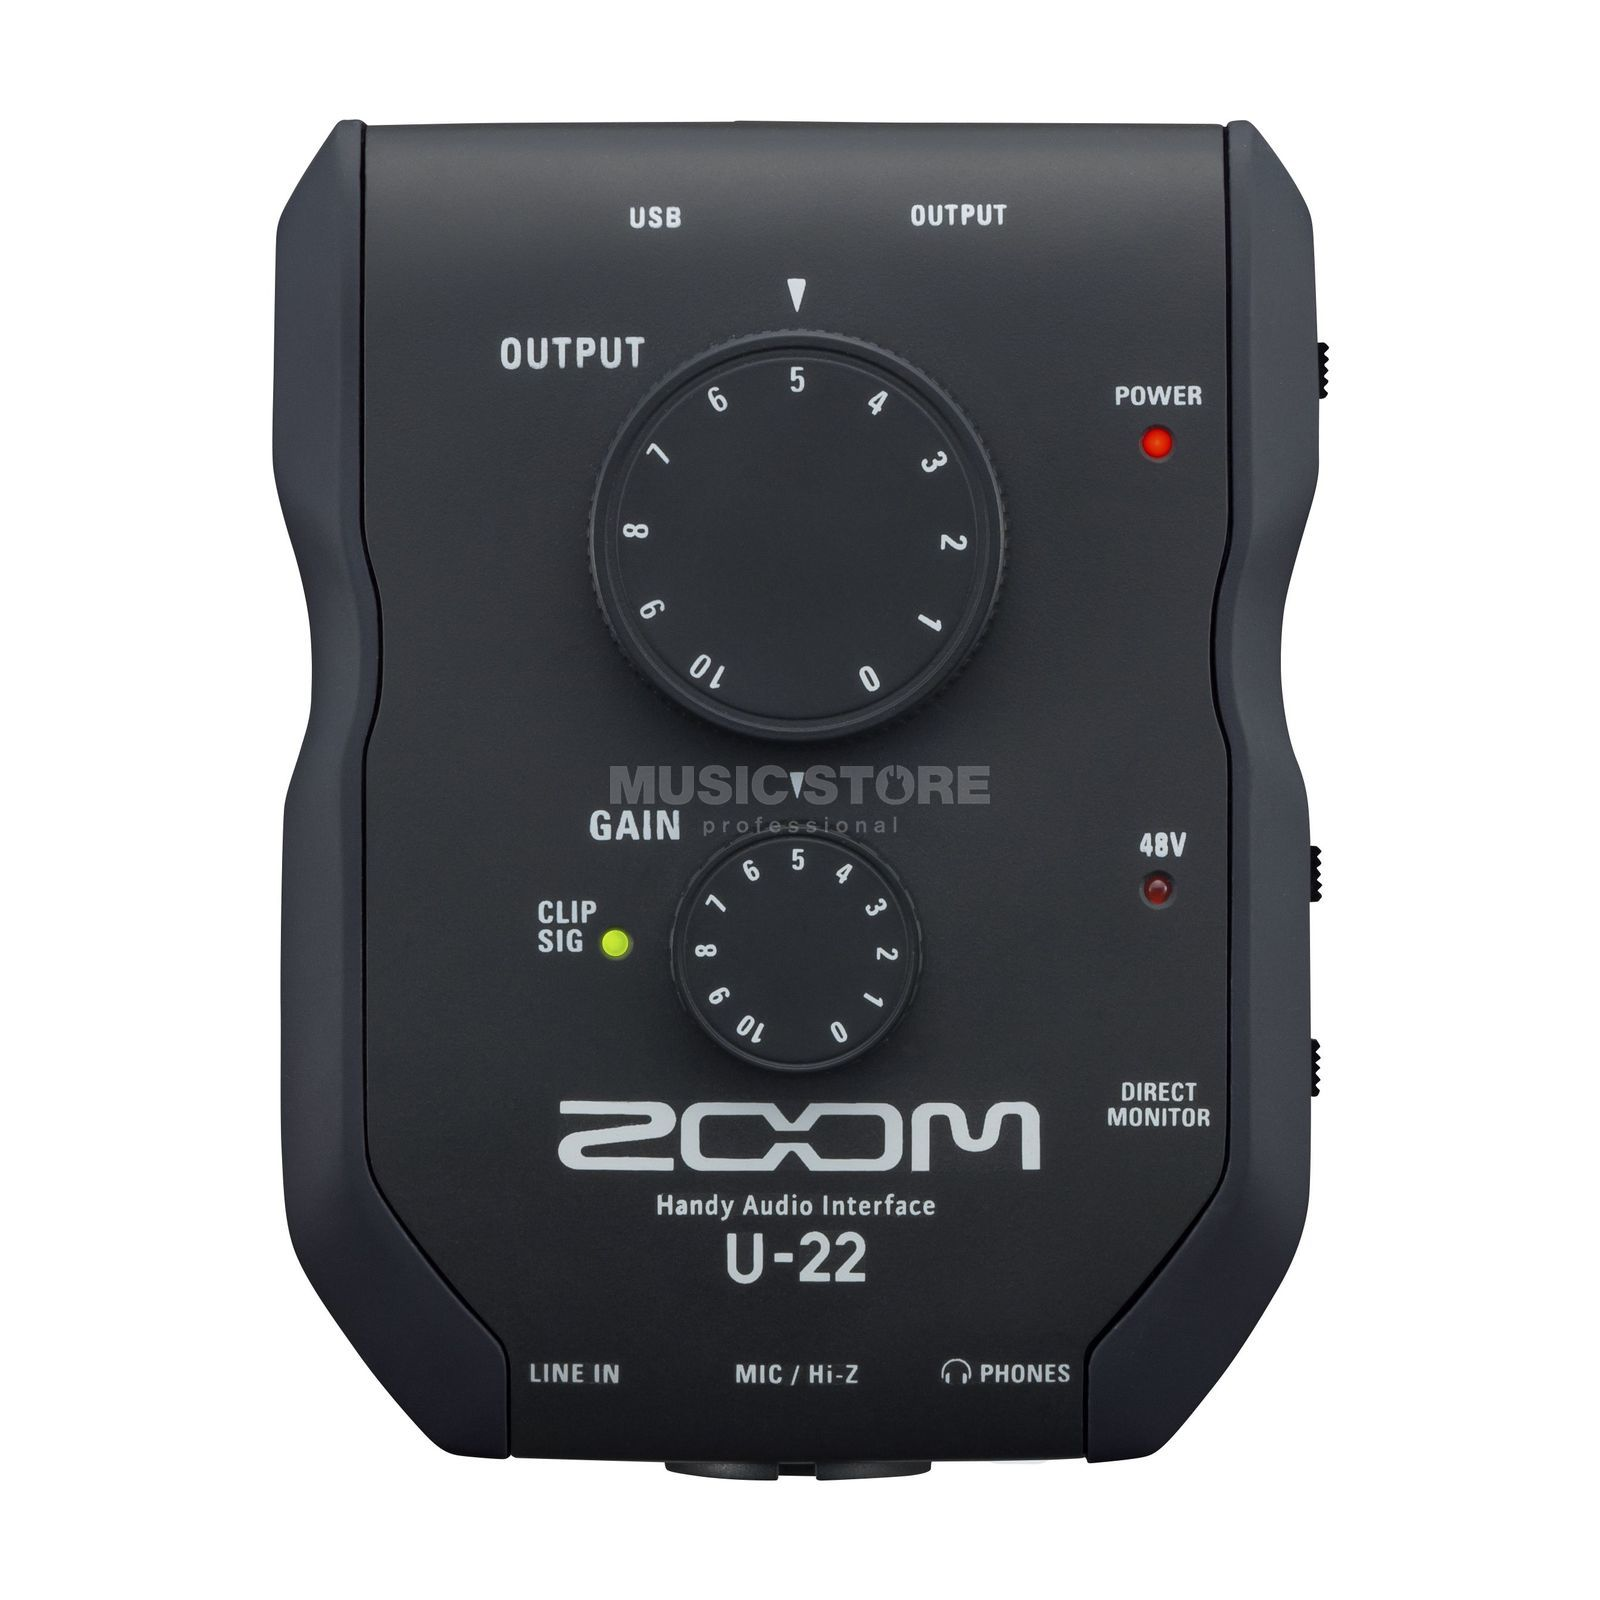 Zoom U-22 Handy Audiointerface Produktbild